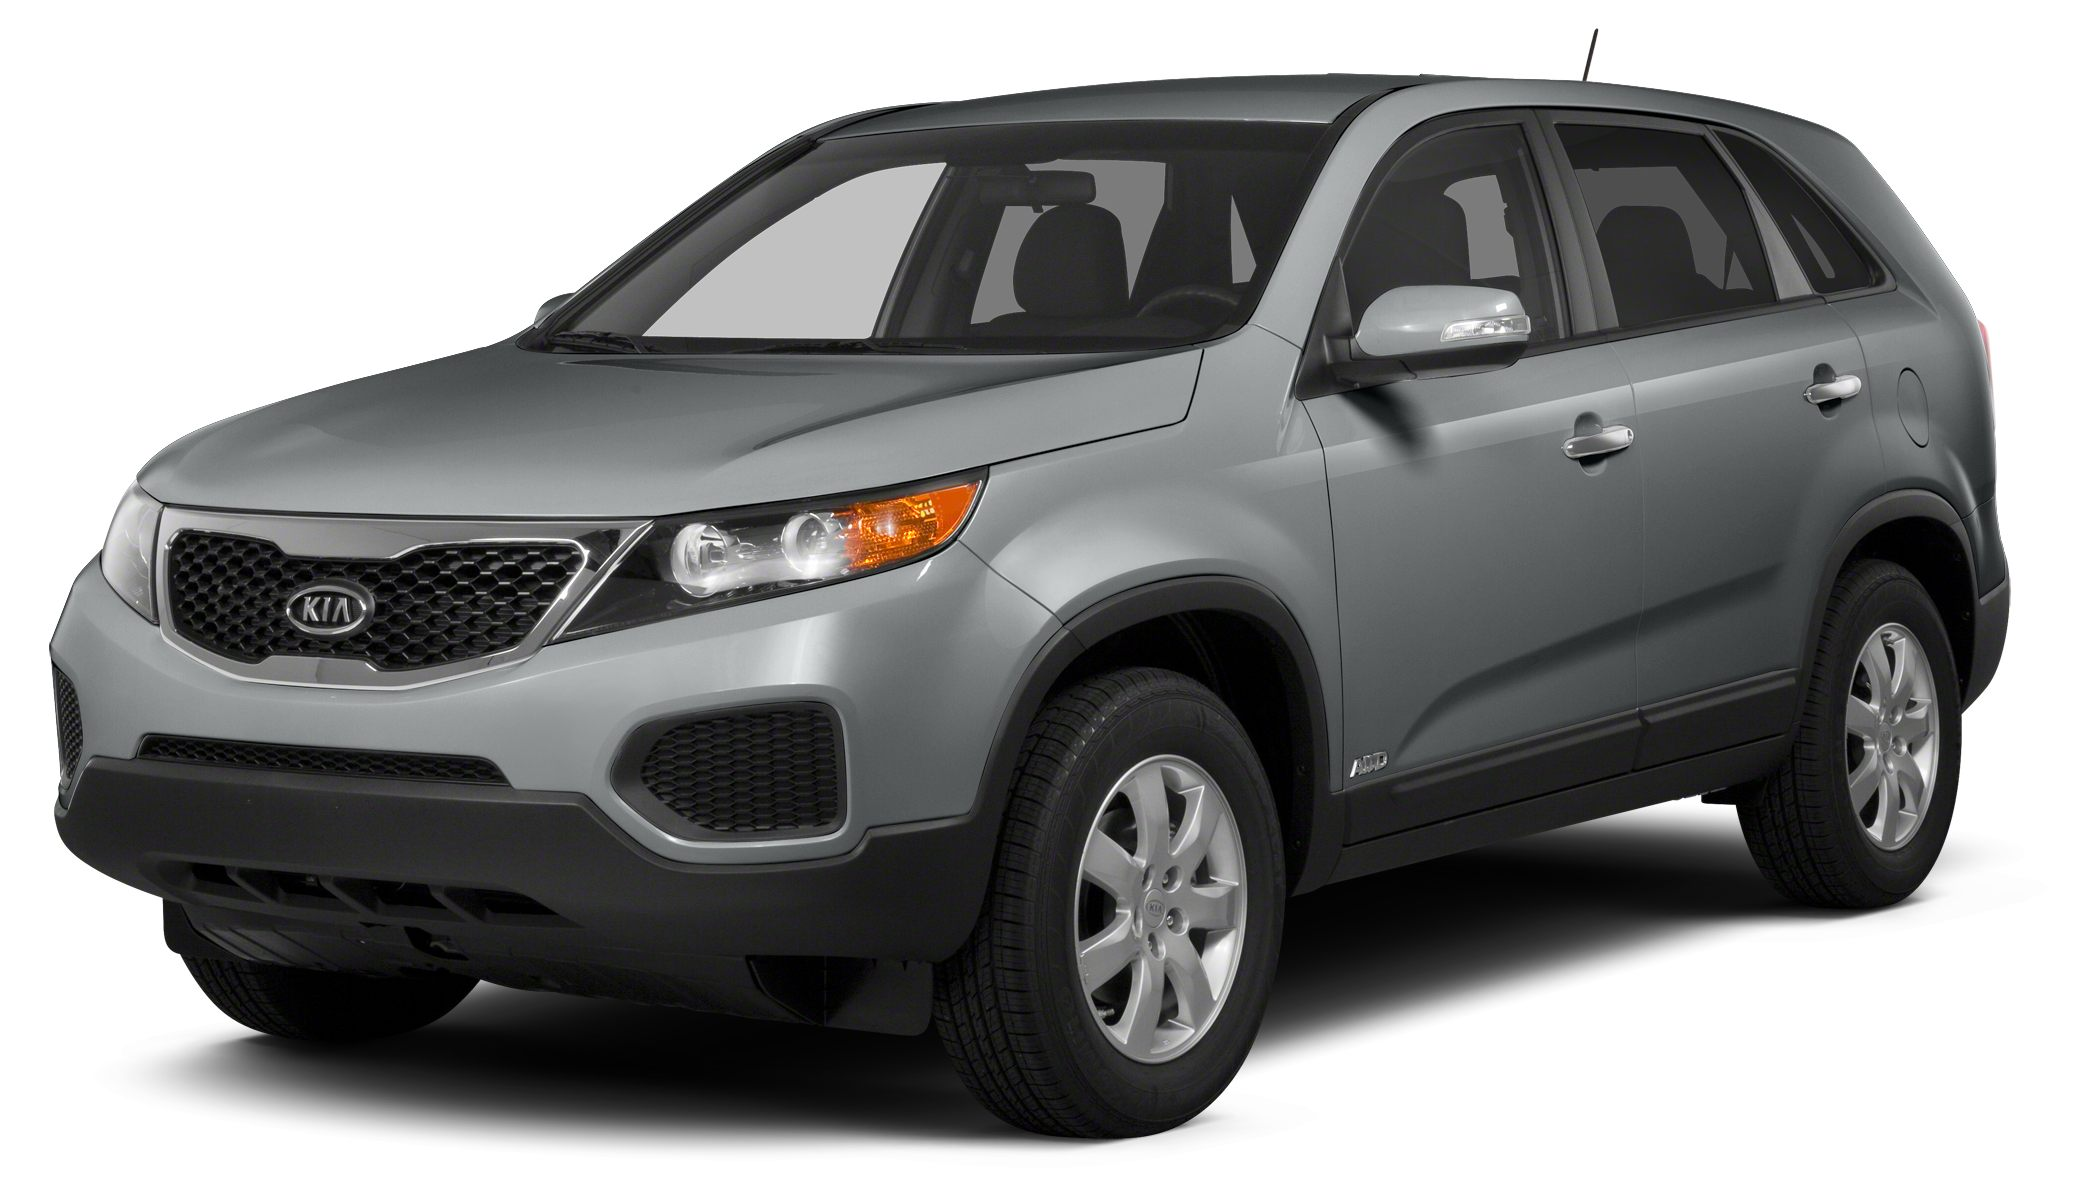 2013 Kia Sorento LX 3rd ROW SEATING all 7 people can ride AWD Reverse camera remote start pre